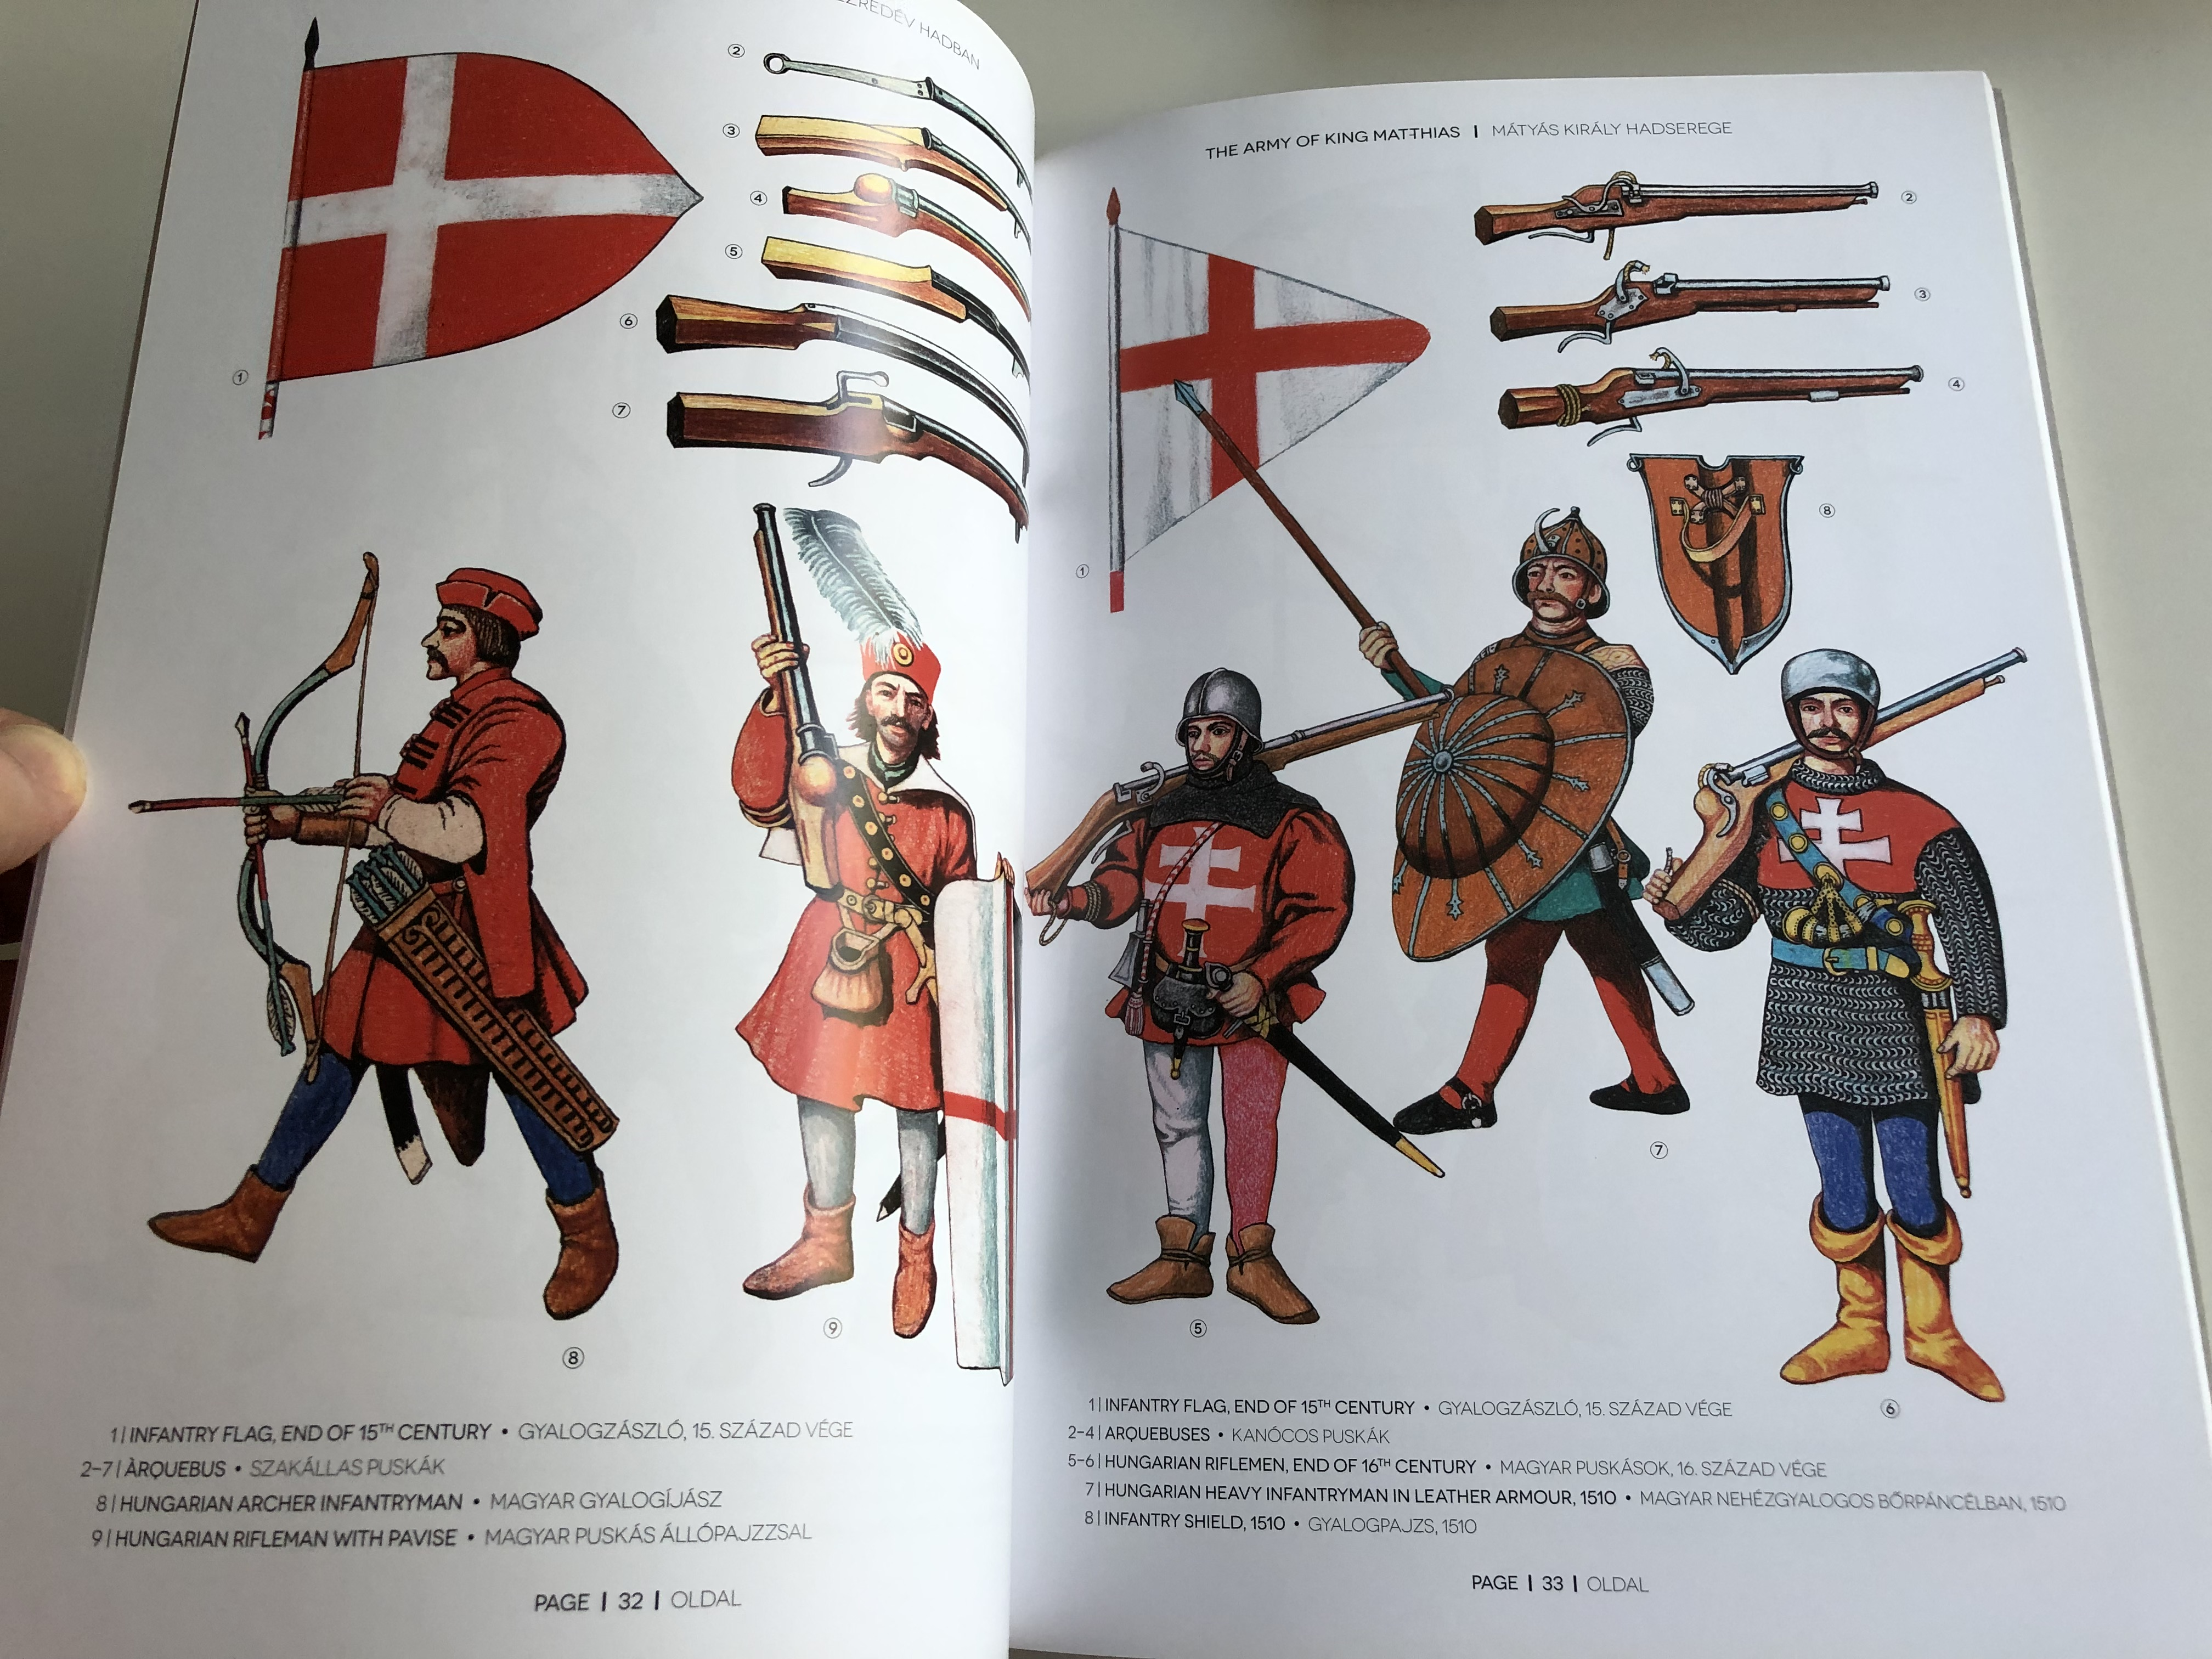 the-army-of-king-matthias-1458-1526-by-gy-z-somogyi-m-ty-s-kir-ly-hadserege-1458-1526-a-millenium-in-the-military-egy-ezred-v-hadban-paperback-2013-hm-zr-nyi-6-.jpg